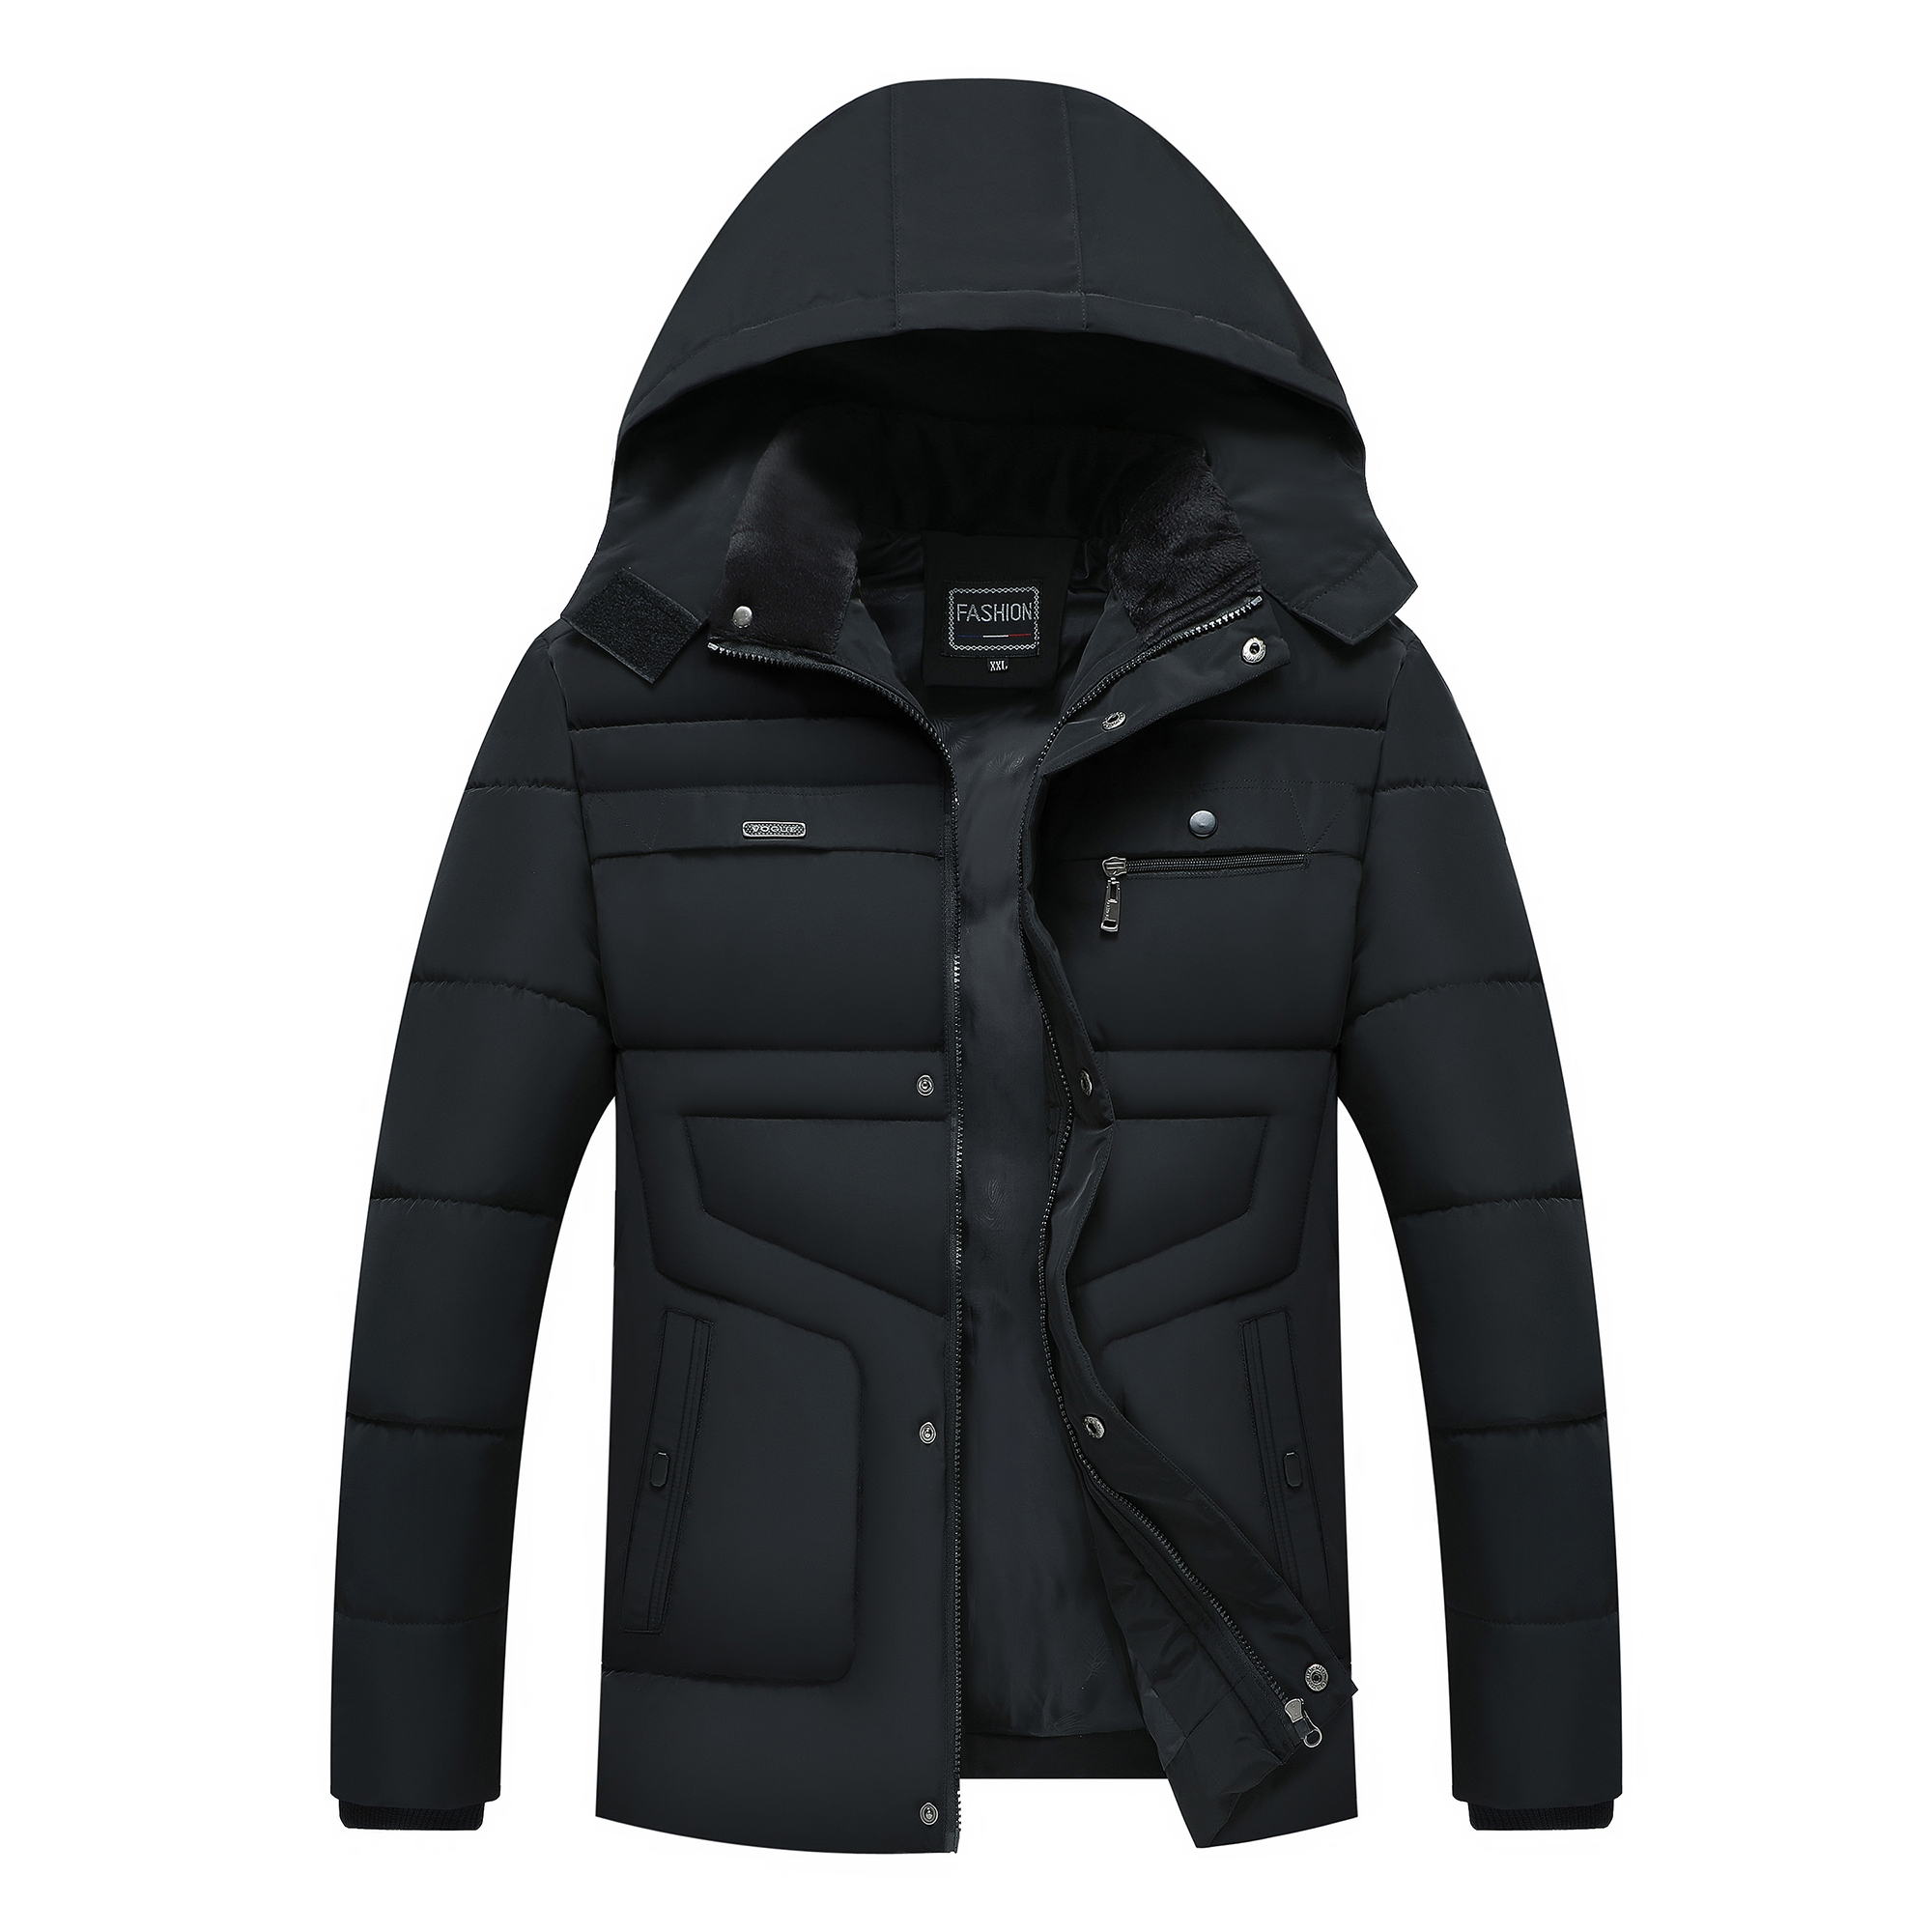 Winter Jacket Men New Parka Coat Men's Hooded Warm Jacket Cold Casual Parks Thickening Outwear Fashion High Quality New ,GA507